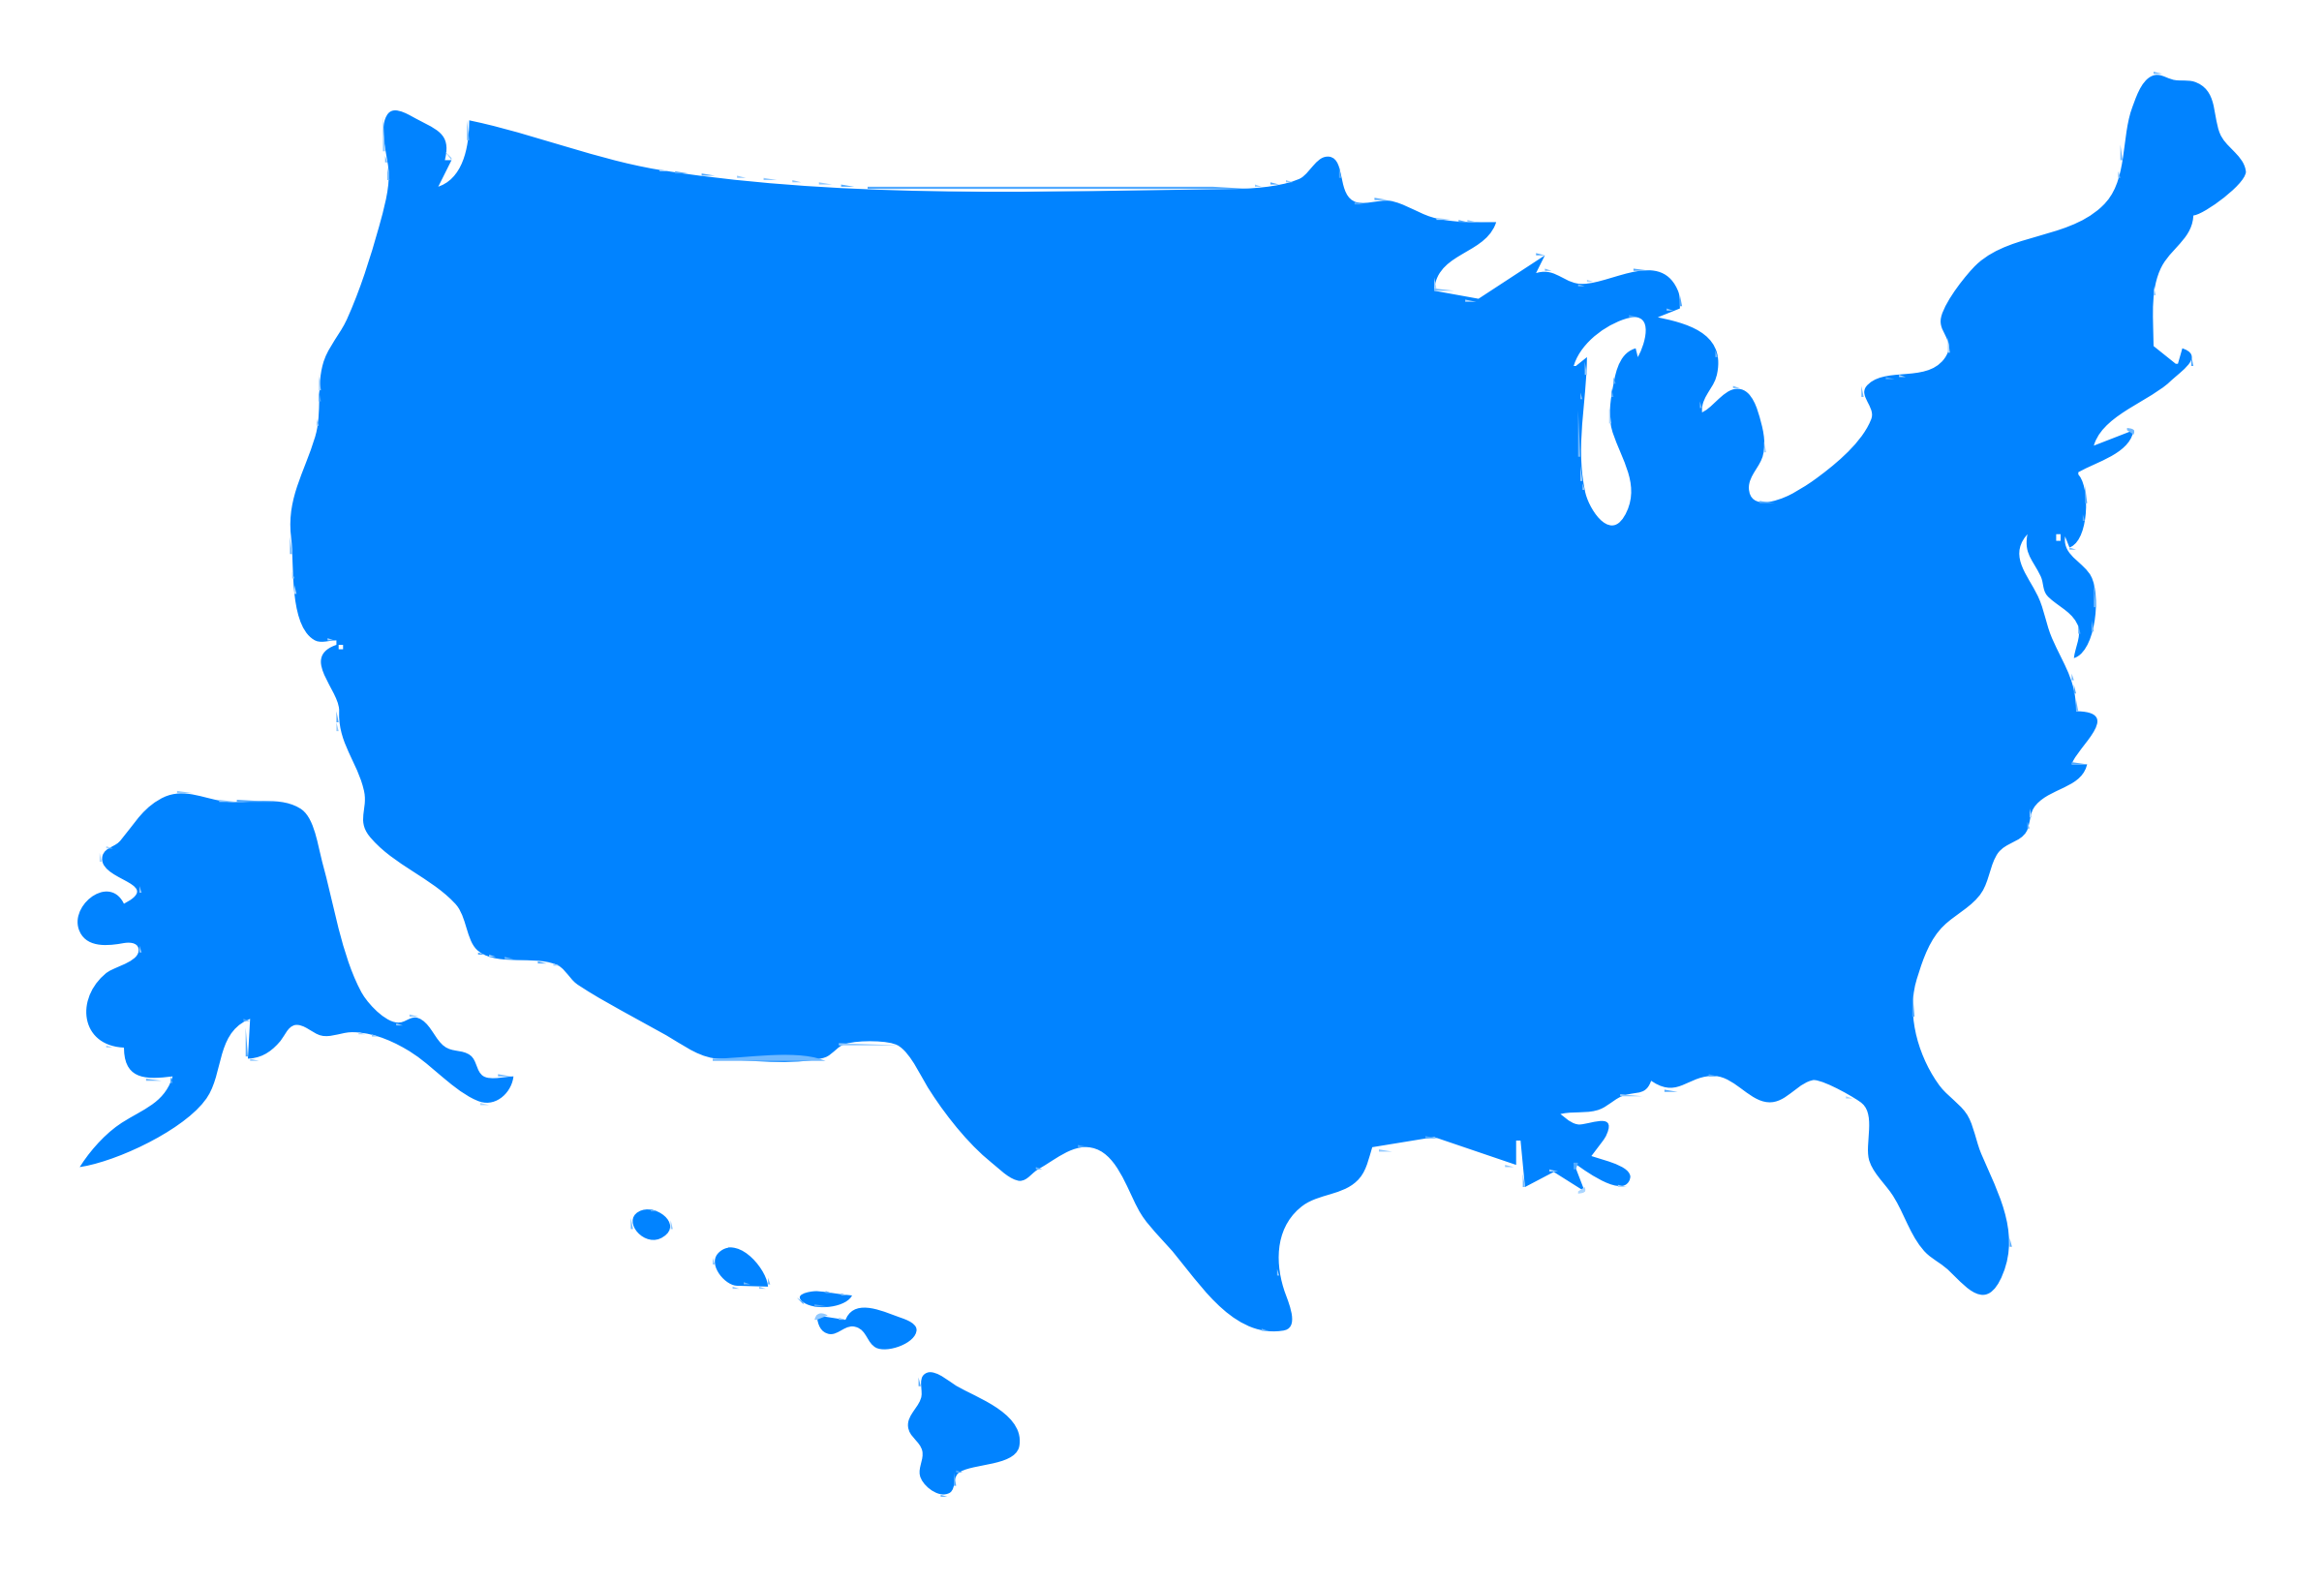 USA Map Silhouette by @IslandVibz, A map silhouette of the U.S.A. ...